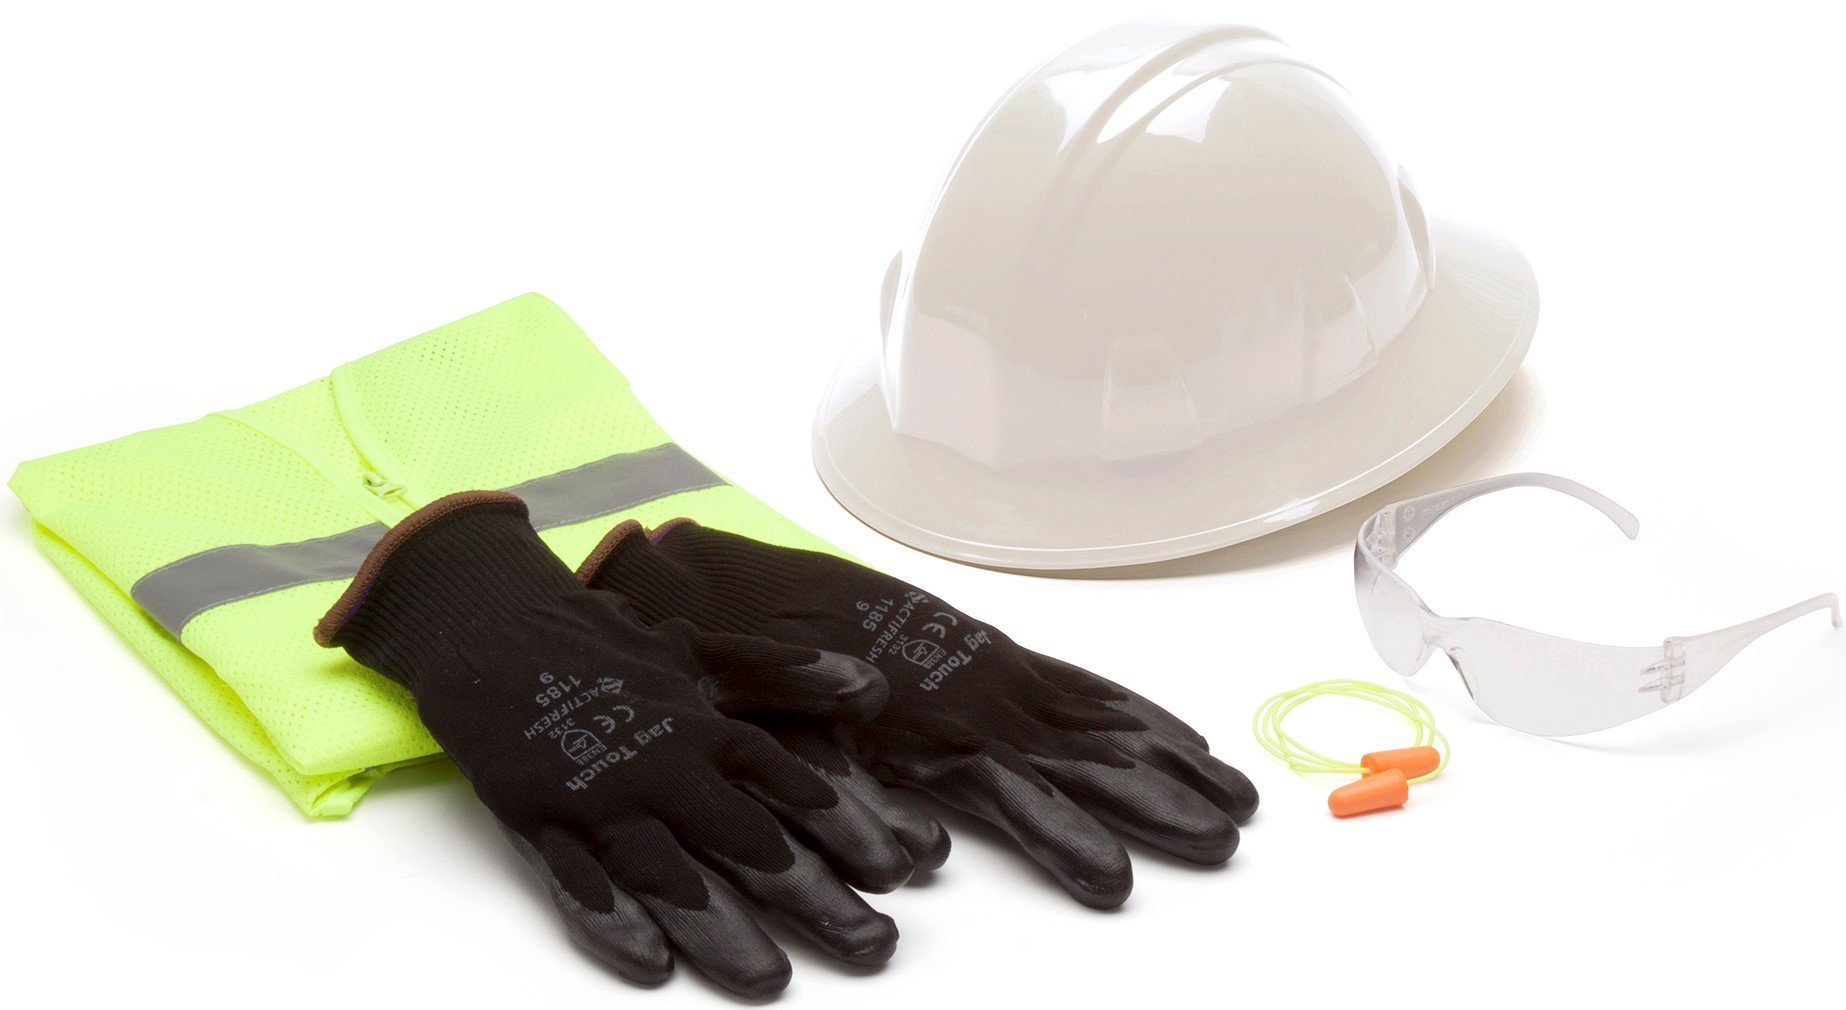 Pyramex Safety New Hire Kit with Safety Vest, Earplugs, Clear Safety Glasses, and Gloves by Pyramex Safety (Image #1)